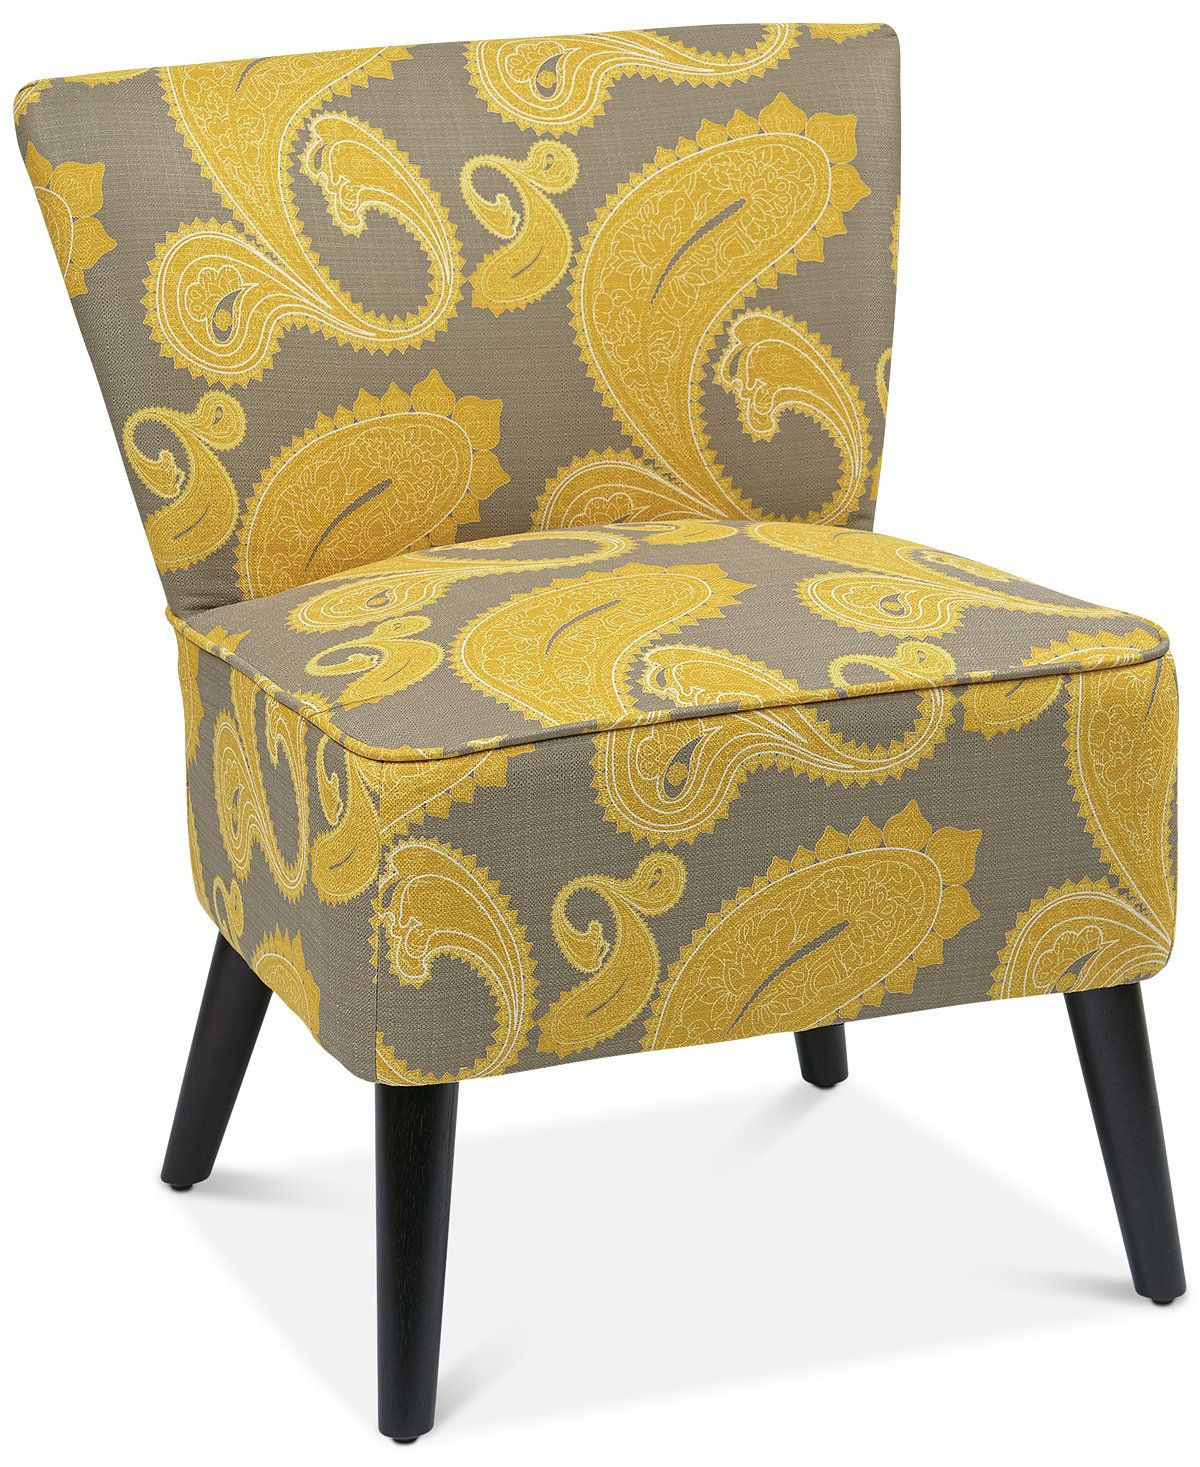 leeza accent chair quick ship  furniture  macy's  accent  - leeza accent chair quick ship  furniture  macy's